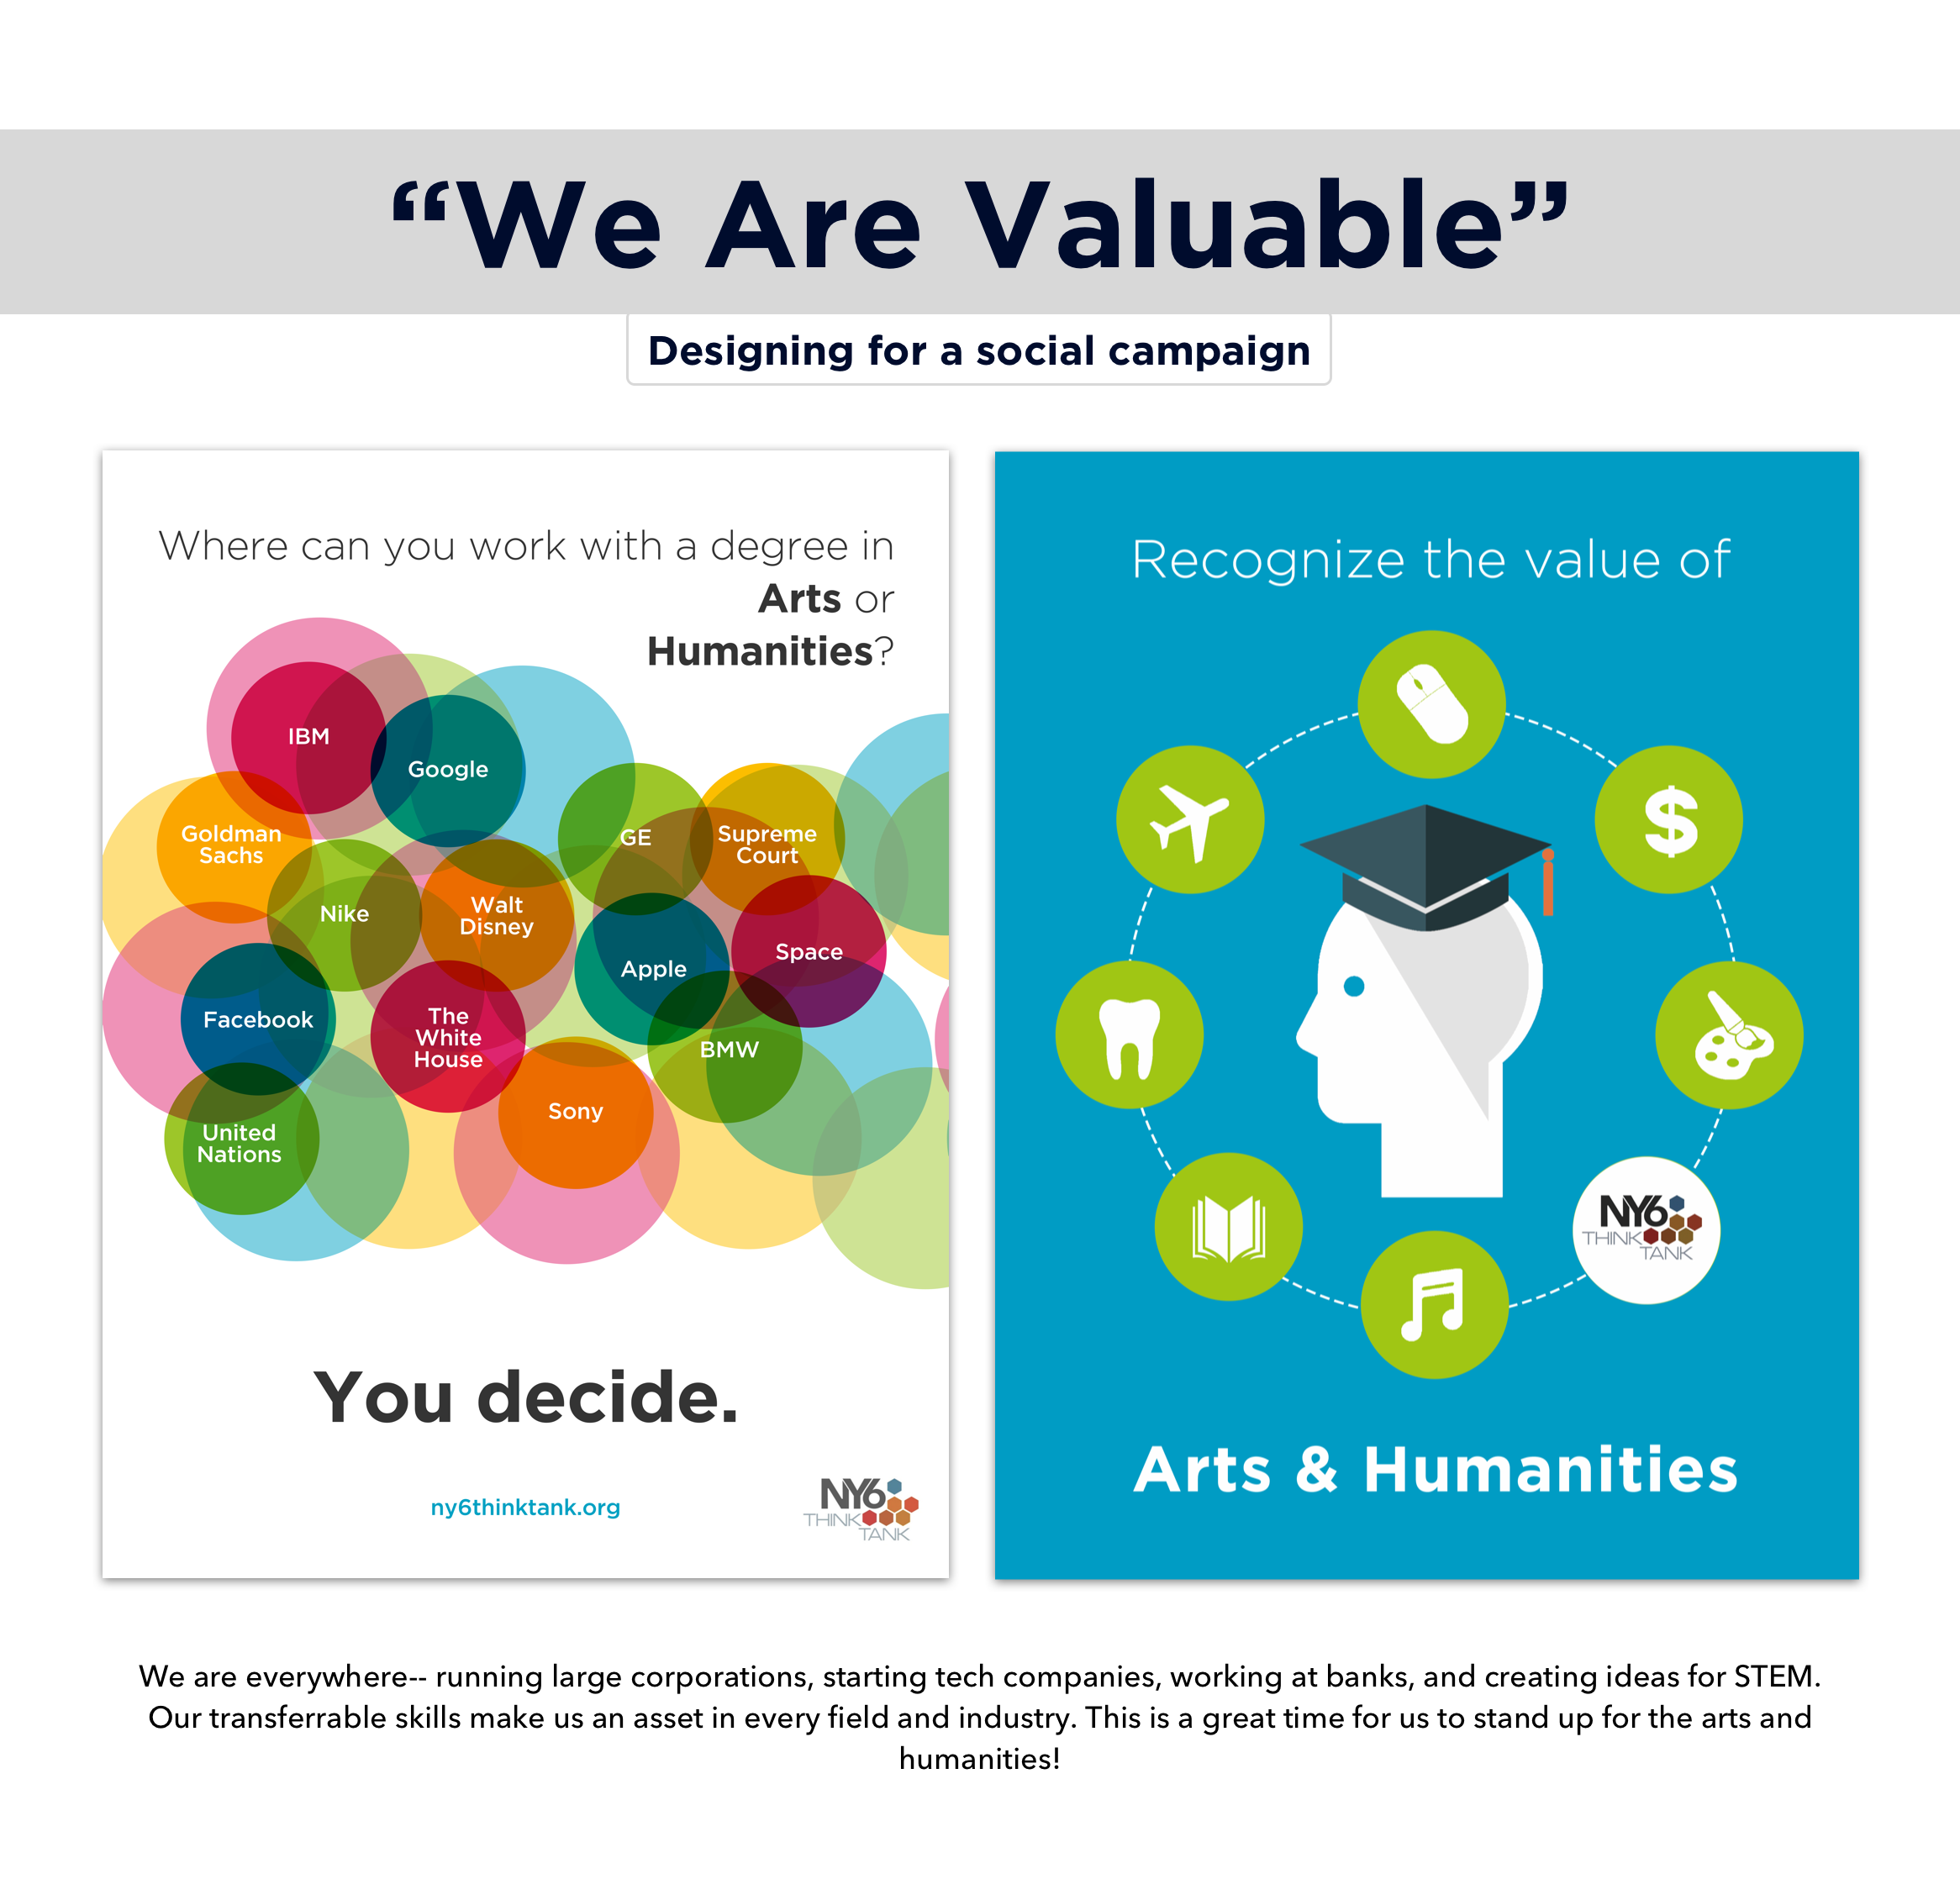 We are Valuable